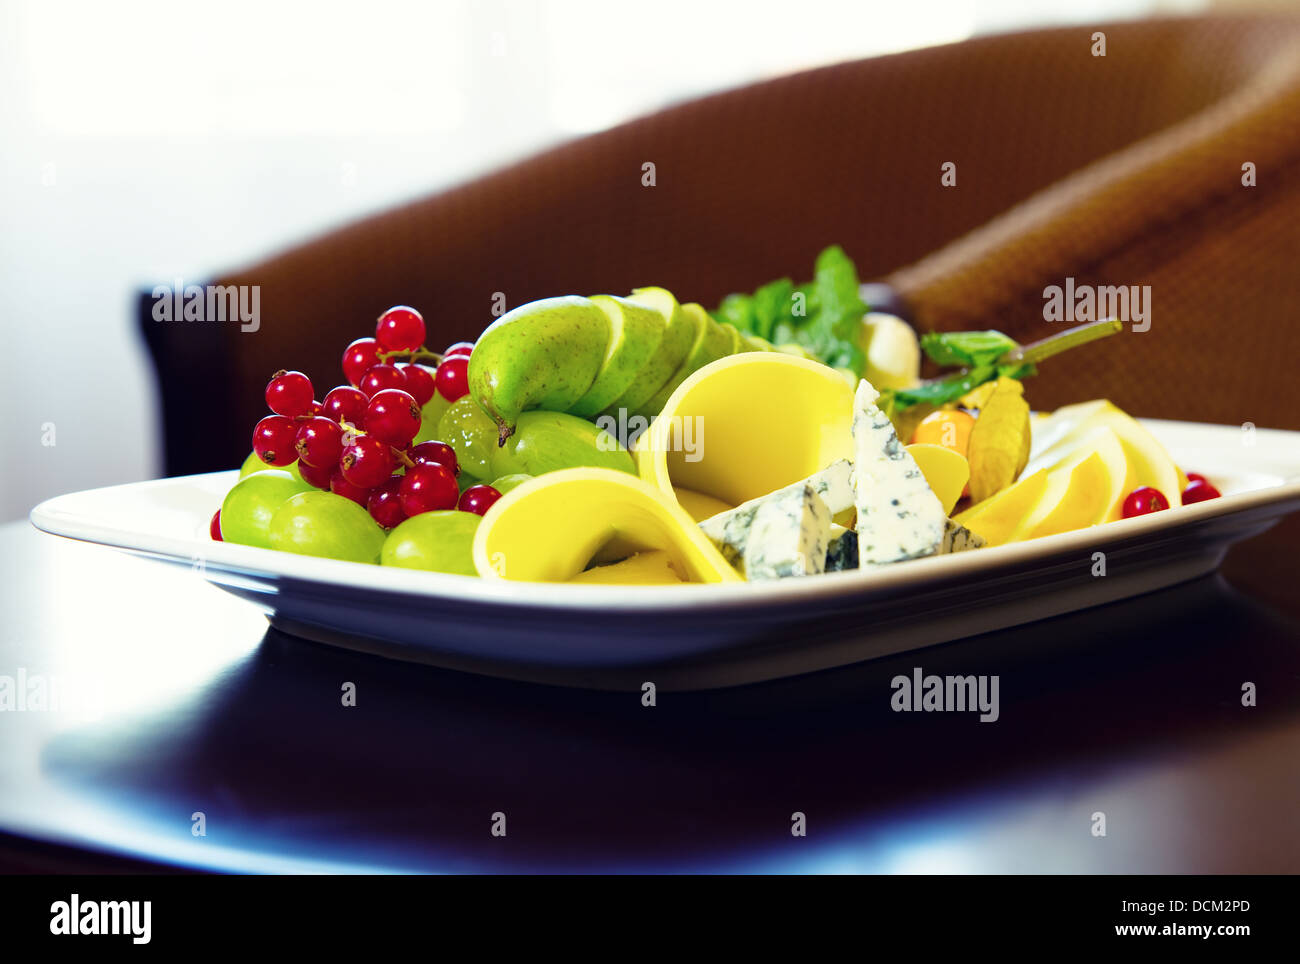 Cheese and fruits - Stock Image